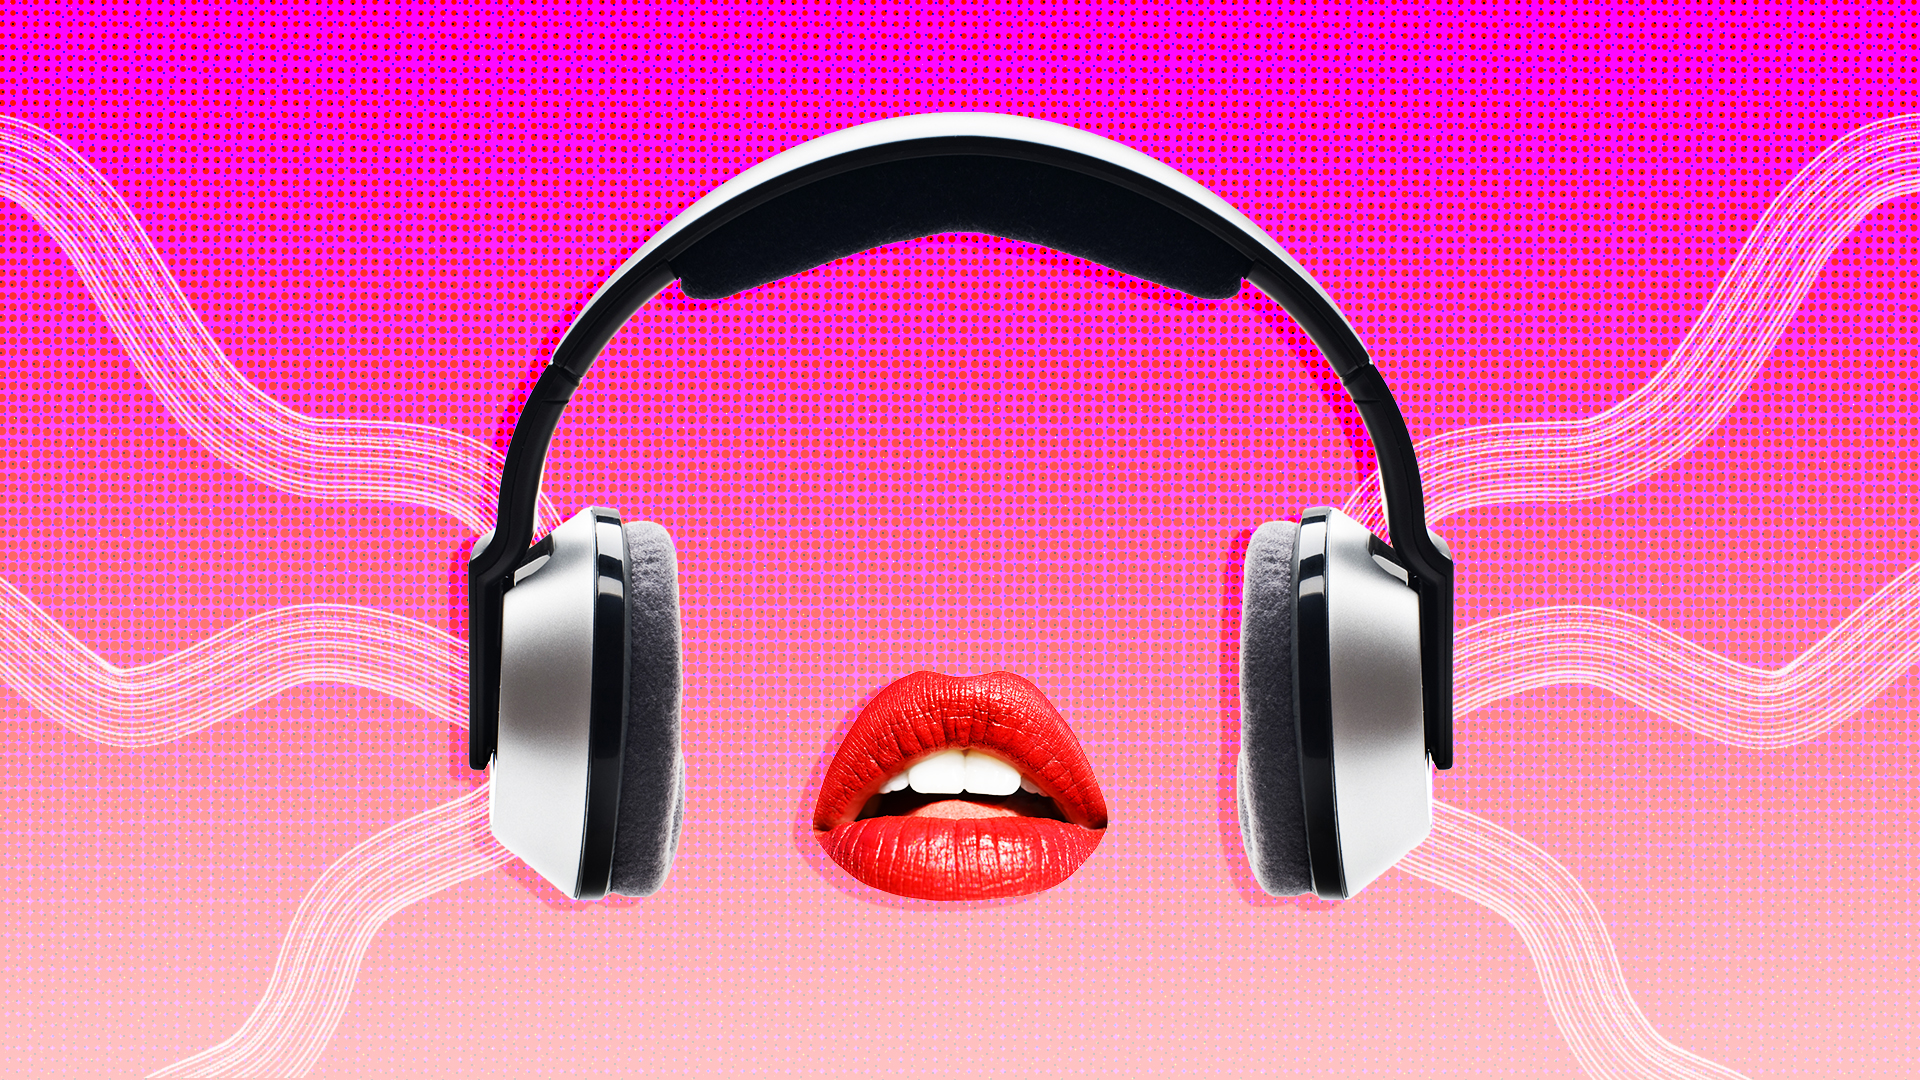 Baby Porn Tumblr 2020's best erotic podcasts worth downloading right now